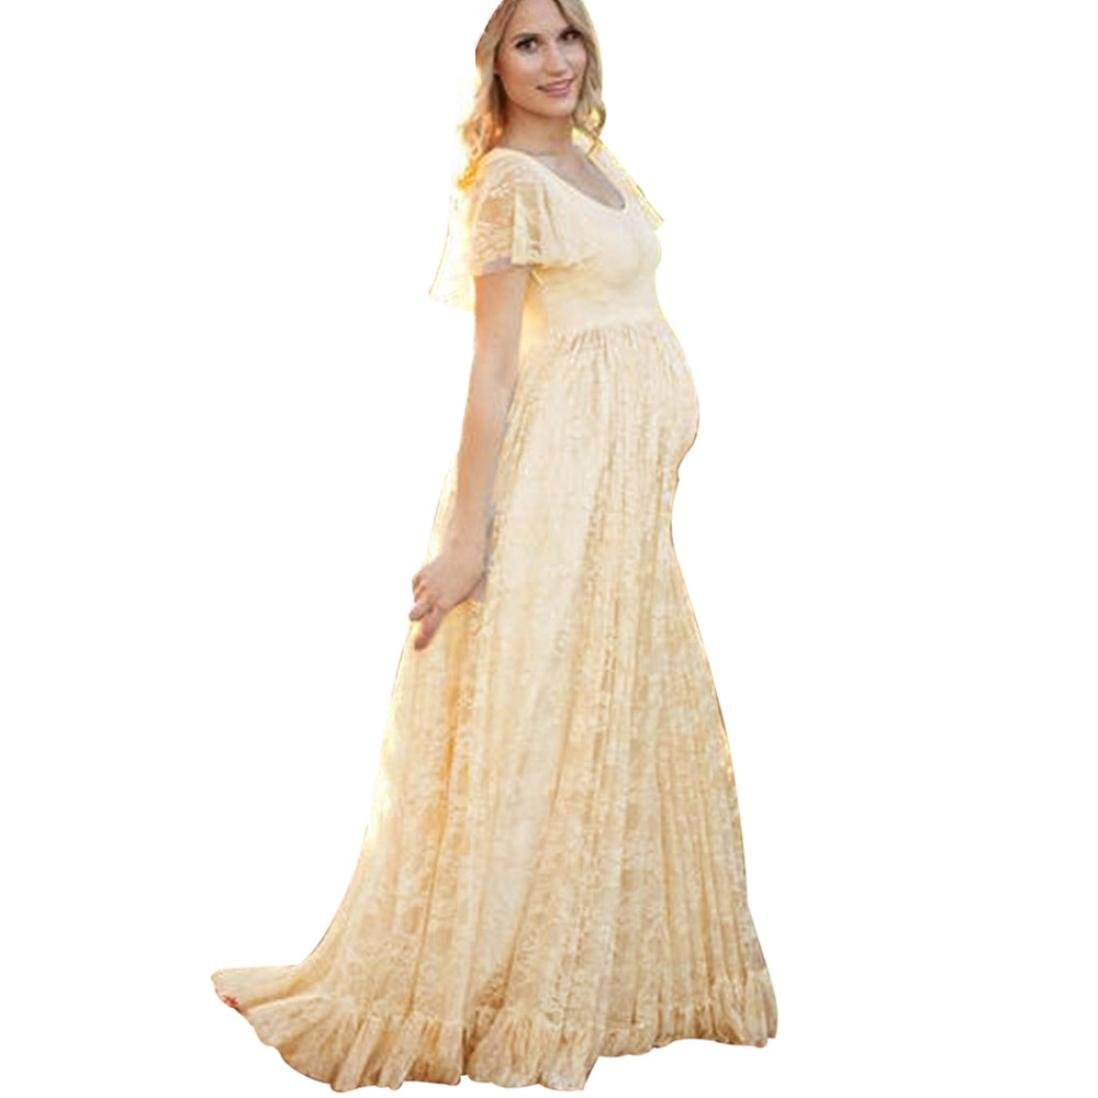 96238f67b3edf Amazon.com: Hemlock Photography Pregnant Dress, Women Floor Long Lace Maternity  Dress (S, Yellow): Cell Phones & Accessories